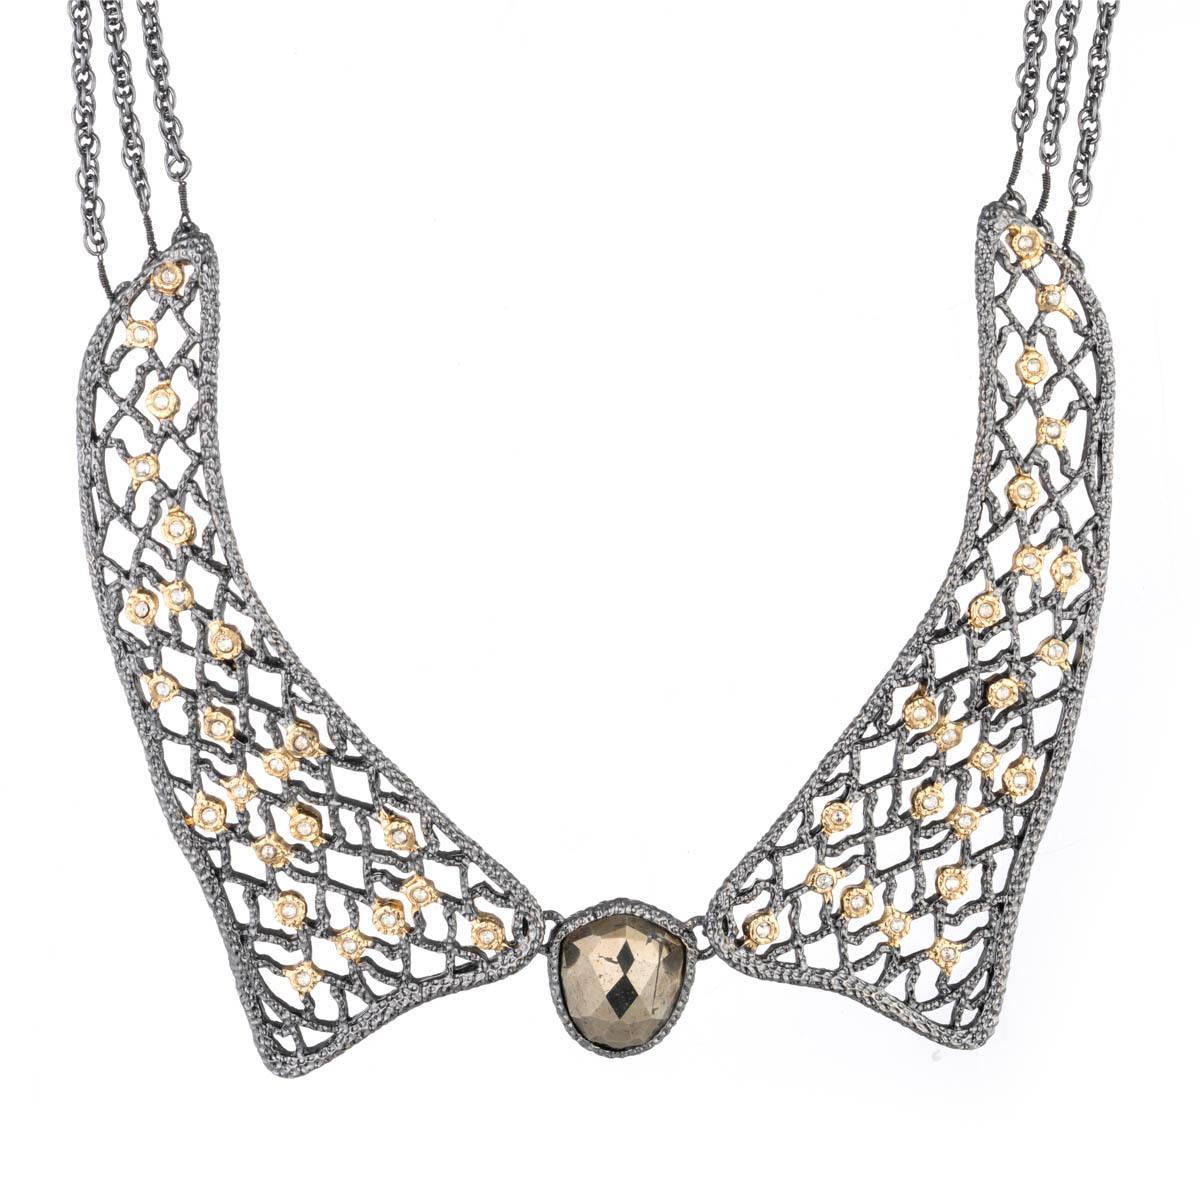 Alexis bittar jardin gold lace collar necklace you might for Jardin necklace